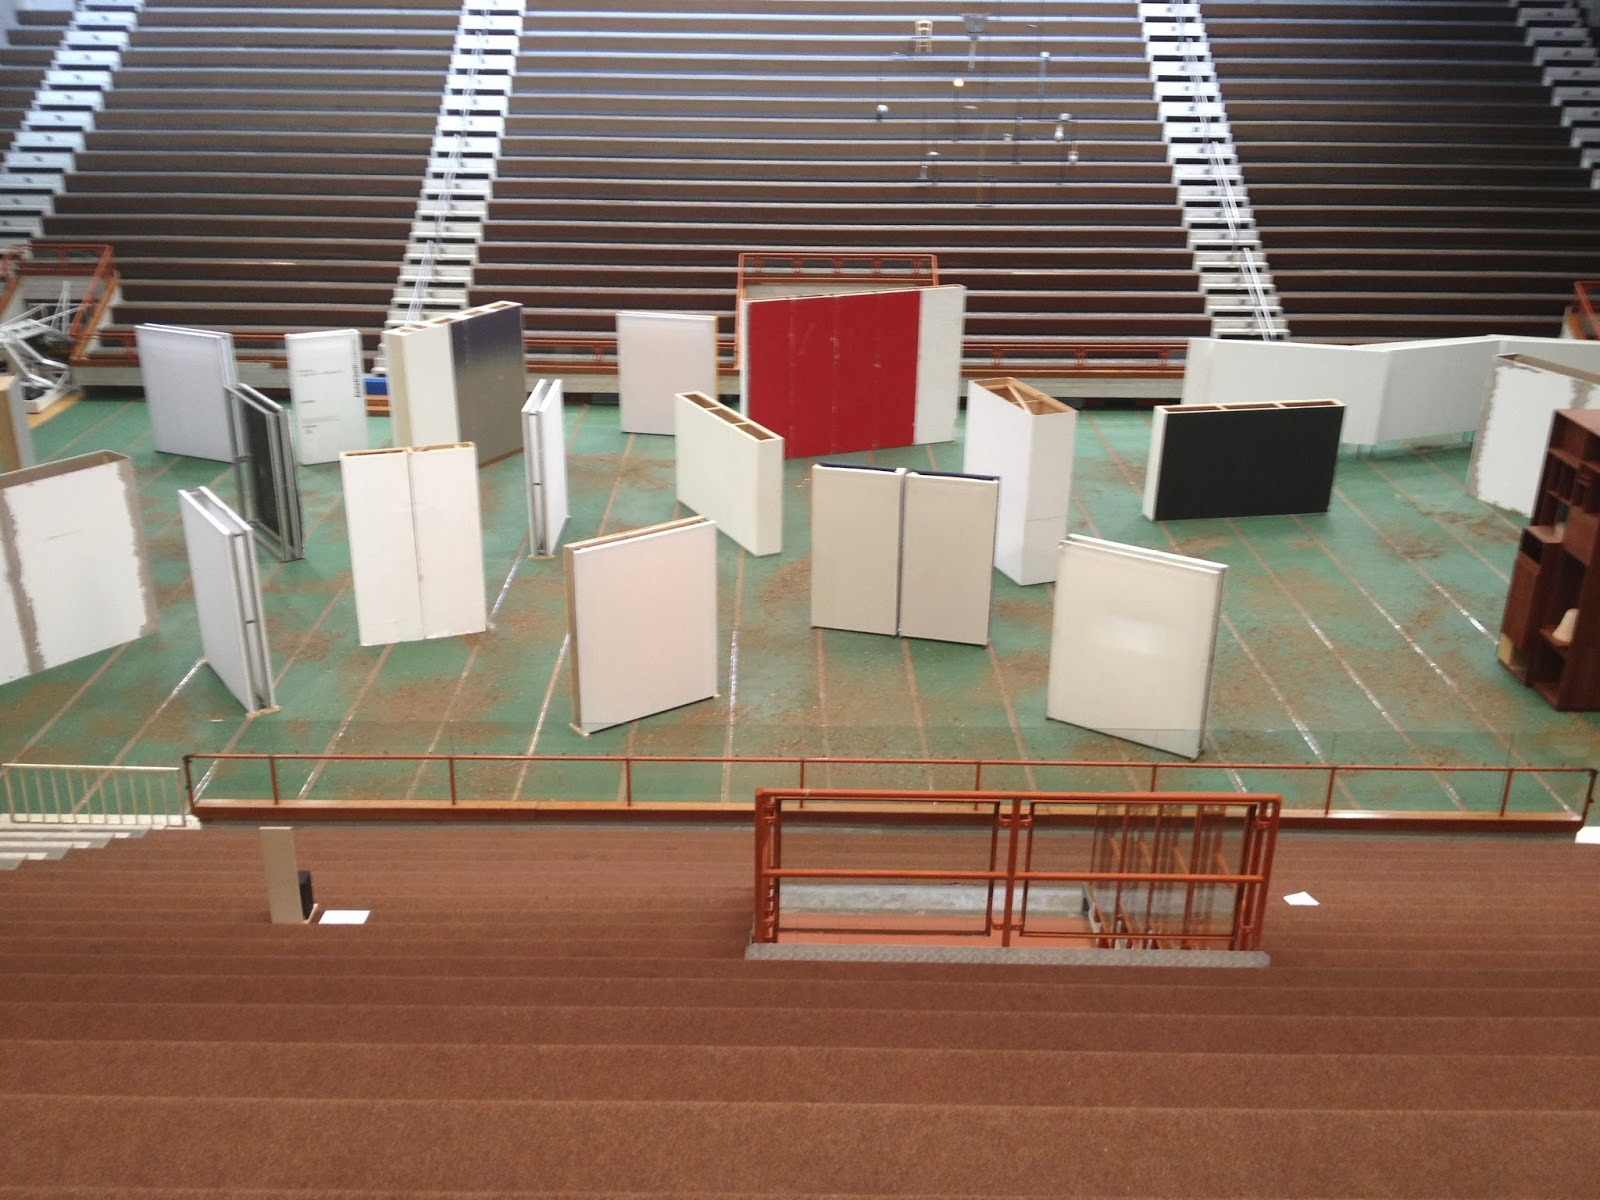 Installation view, the Lithuania and Cyprus pavilion at the 55th Venice Biennale